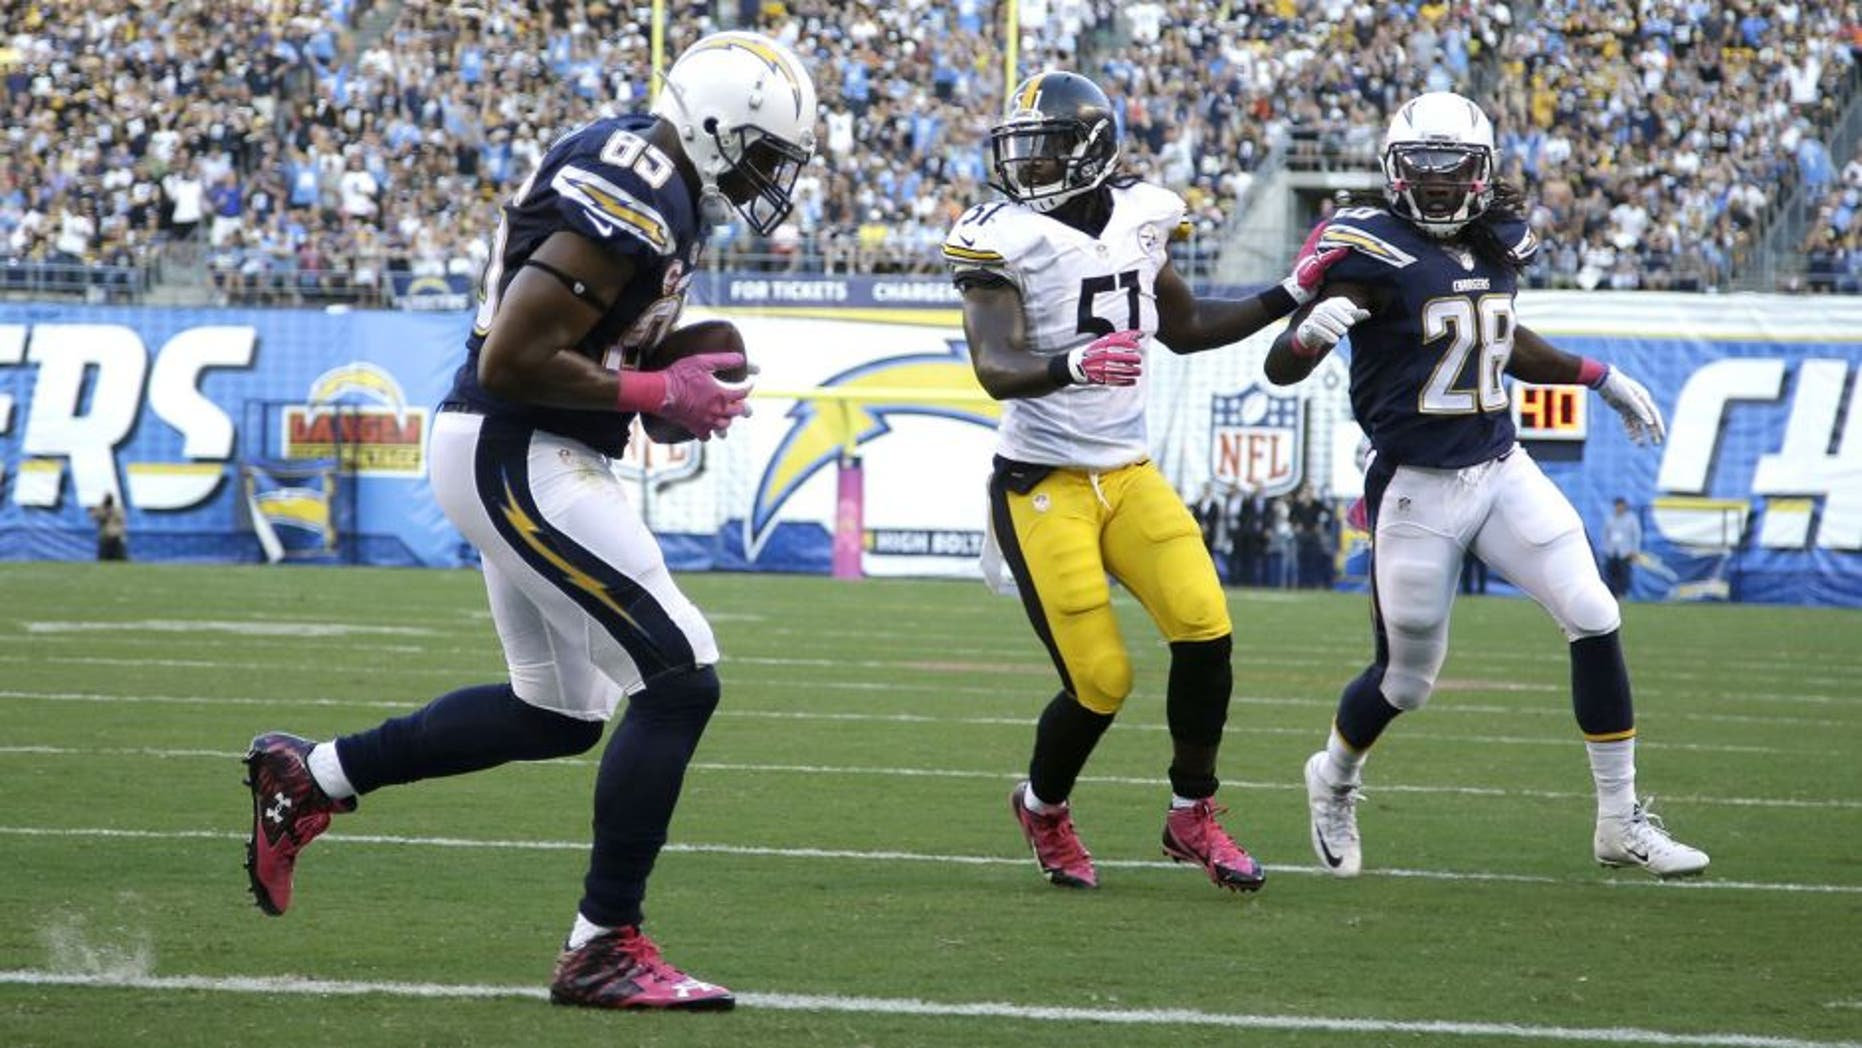 SAN DIEGO, CA - OCTOBER 12: Tight end Antonio Gates #85 of the San Diego Chargers catches a touchdown pass against the Pittsburgh Steelers at Qualcomm Stadium on October 12, 2015 in San Diego, California. (Photo by Jeff Gross/Getty Images)